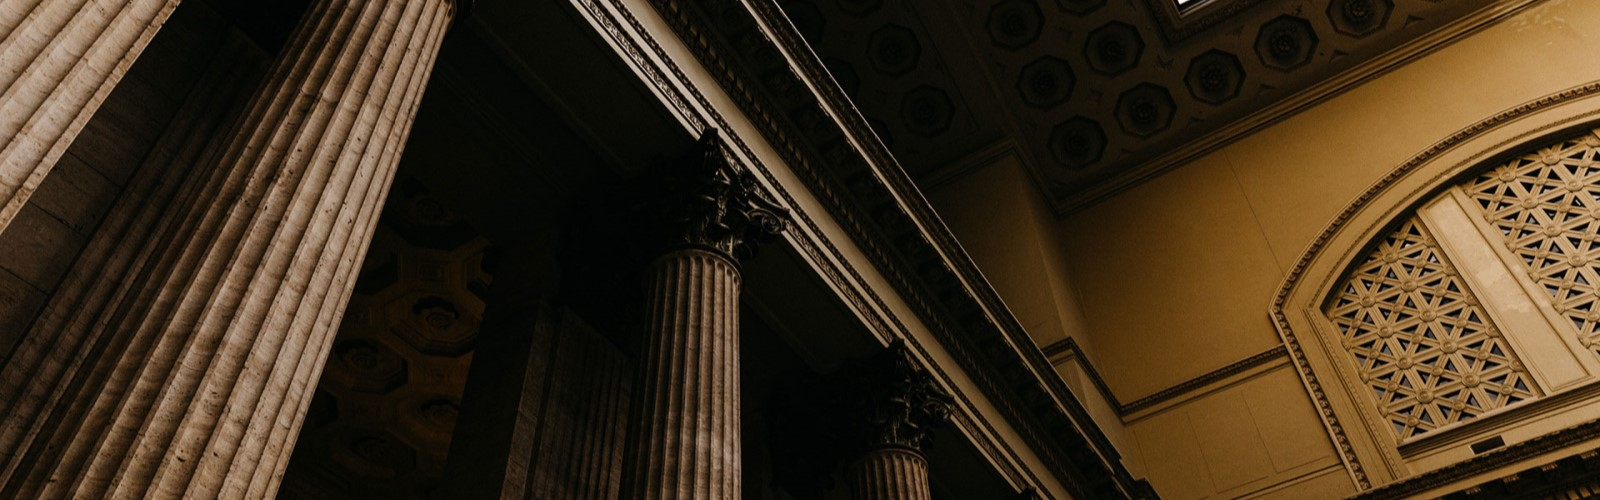 litigation-banner